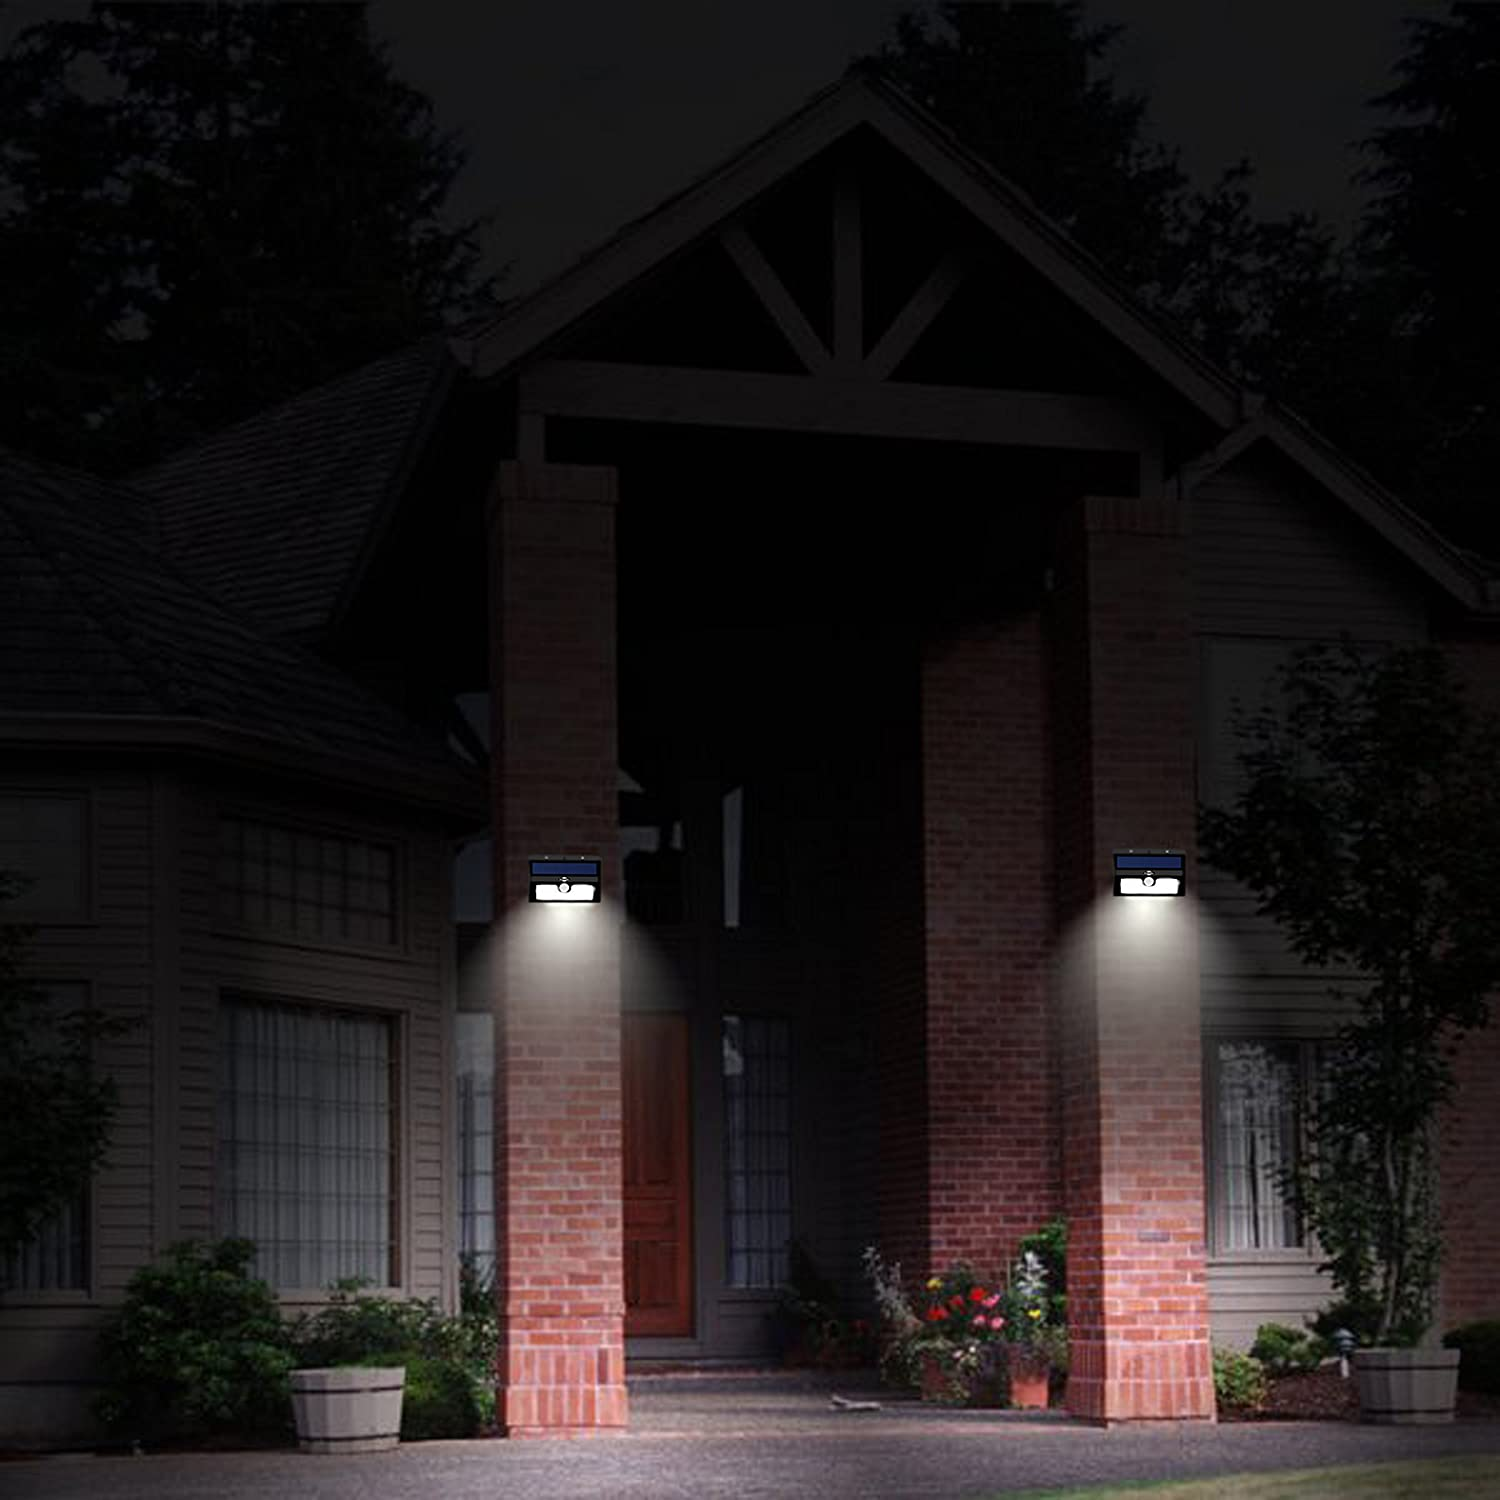 broSolar 20 Big LED Motion Sensor Solar Powered Lights Wireless